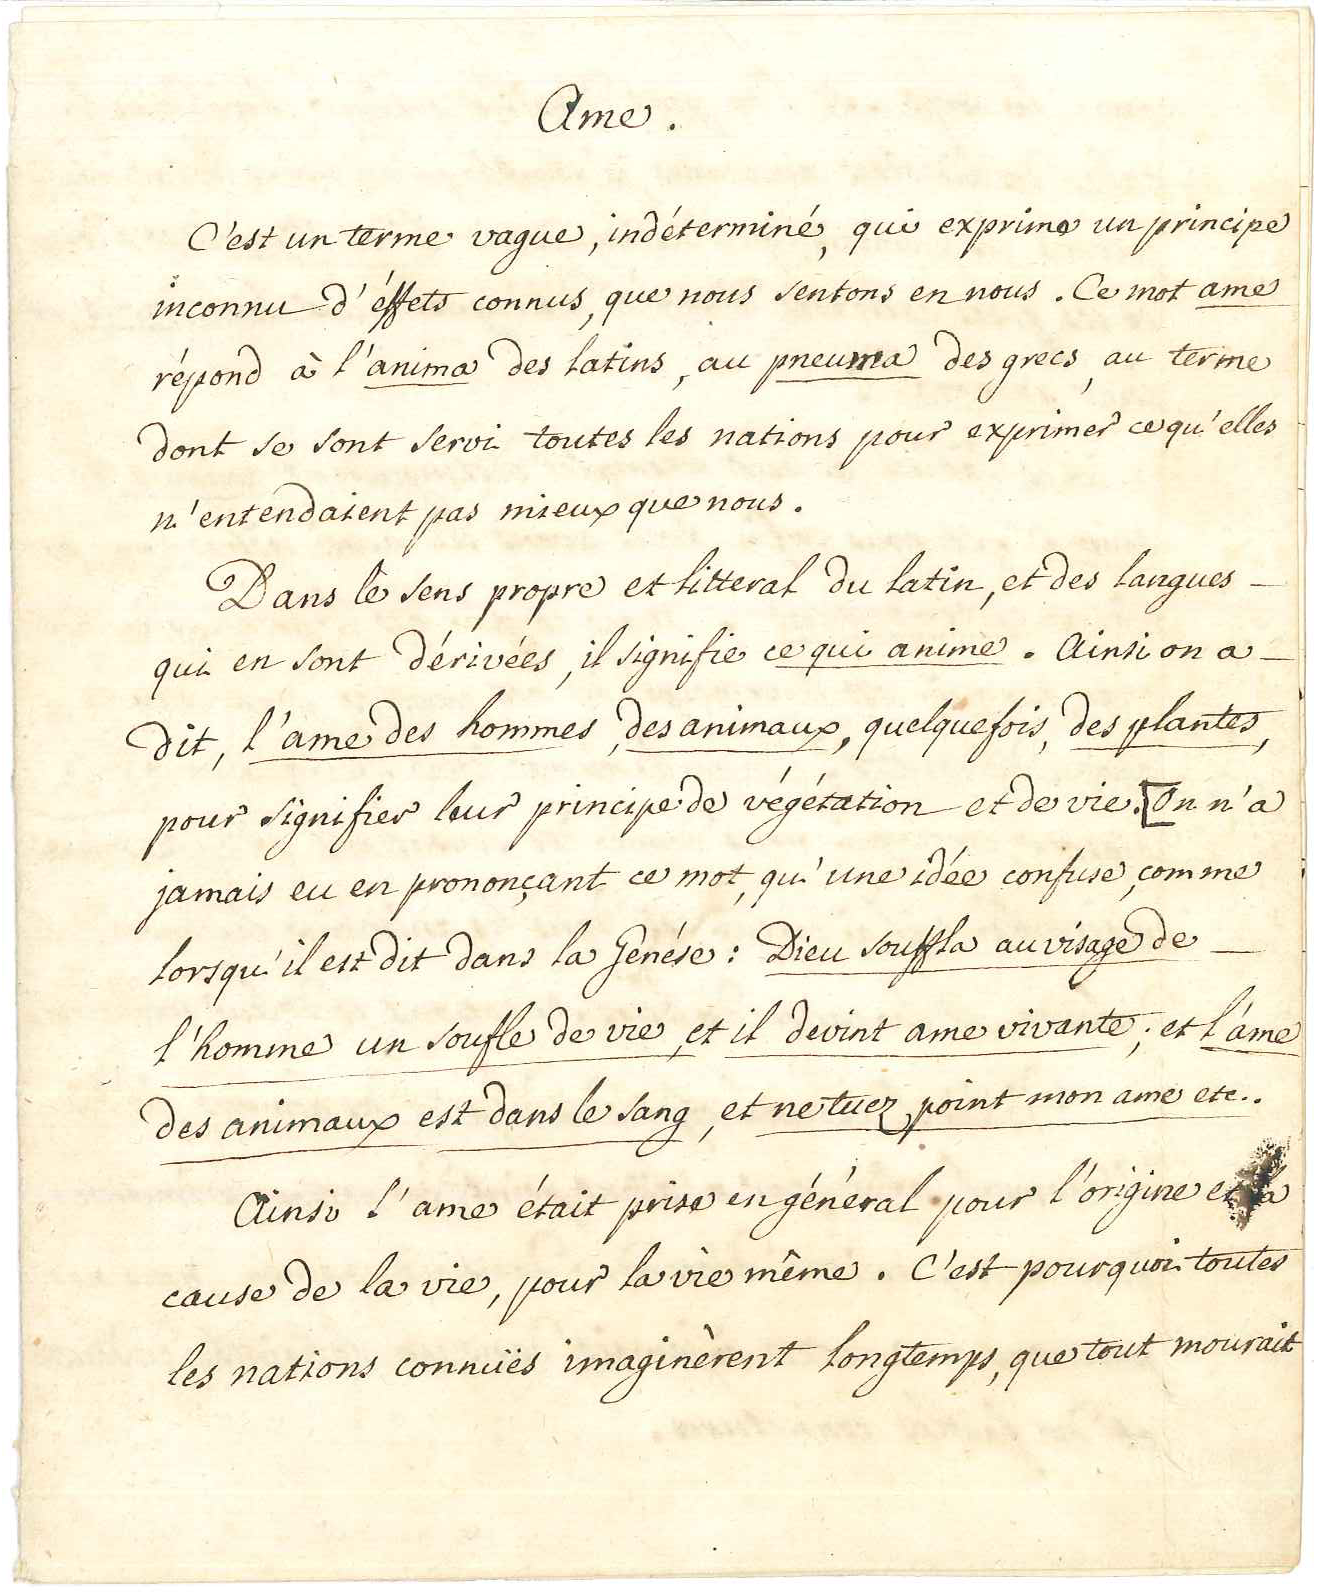 A manuscript of one of the texts in this volume (article 'Ame', in the hand of Voltaire's secretary, Wagnière). Bibliothèque de Genève, Musée Voltaire: MS 34/1, f.1.